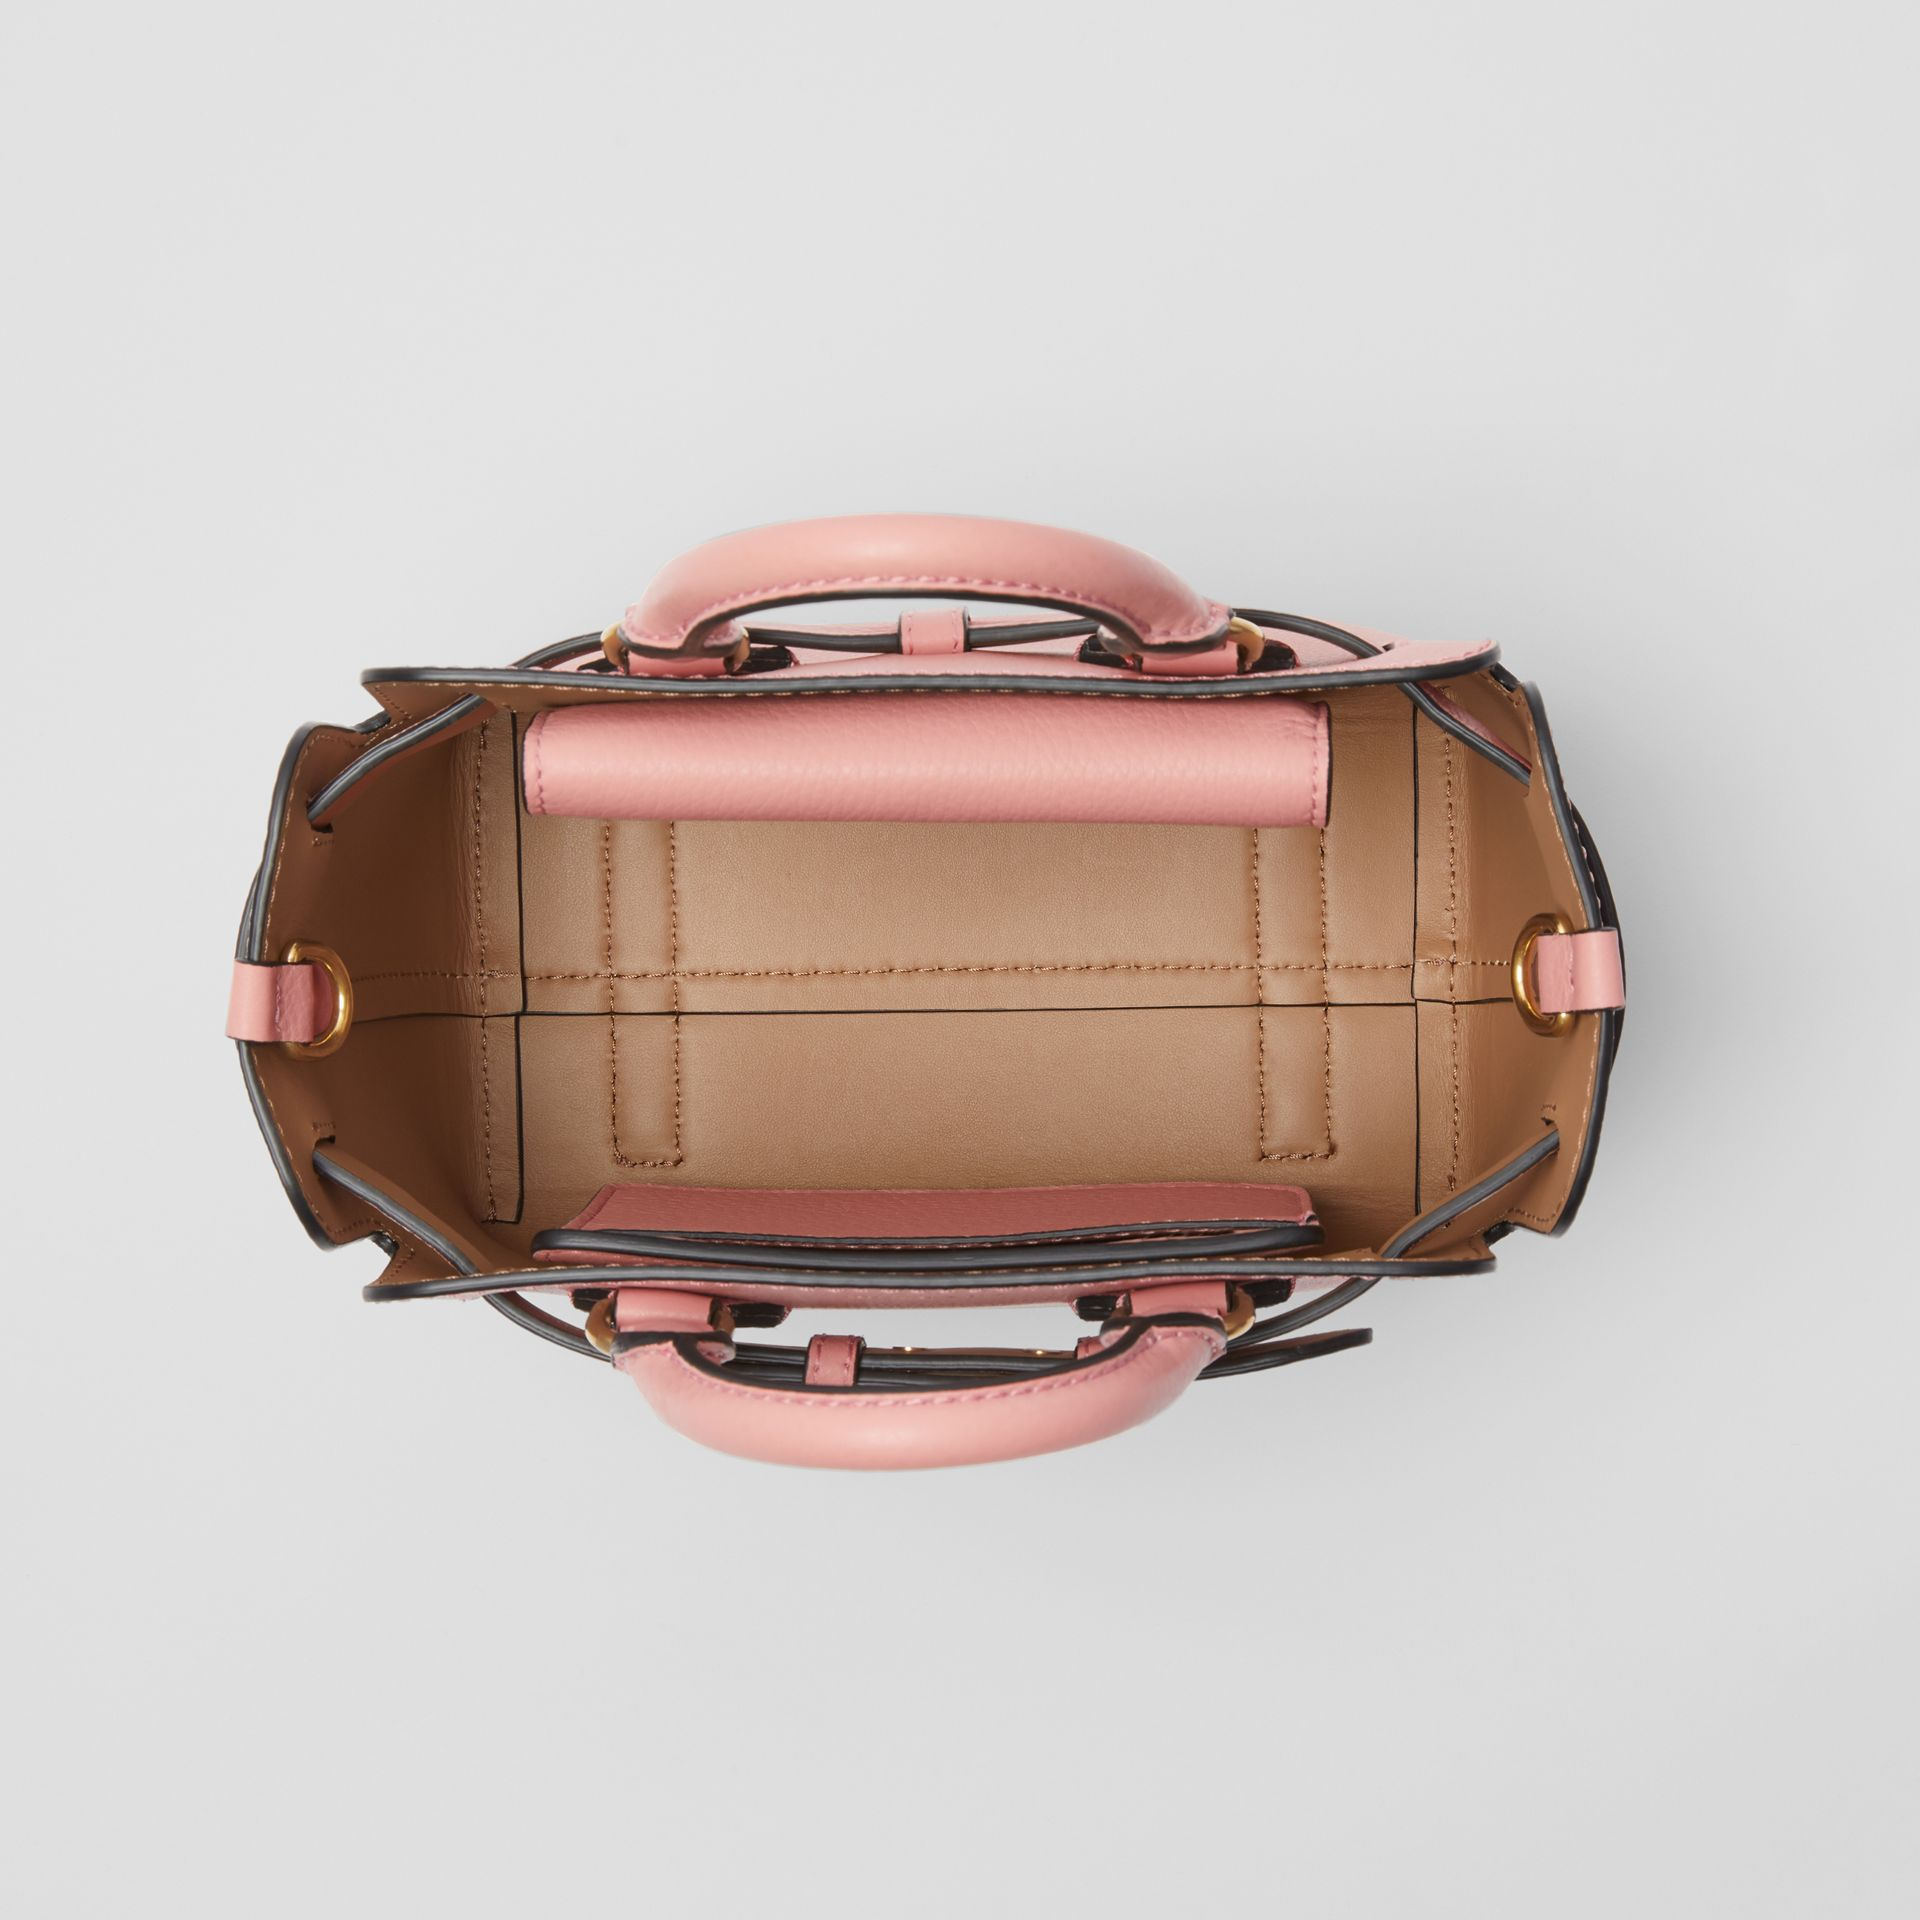 Borsa The Belt mini in pelle (Rosa Cenere) - Donna | Burberry - immagine della galleria 5